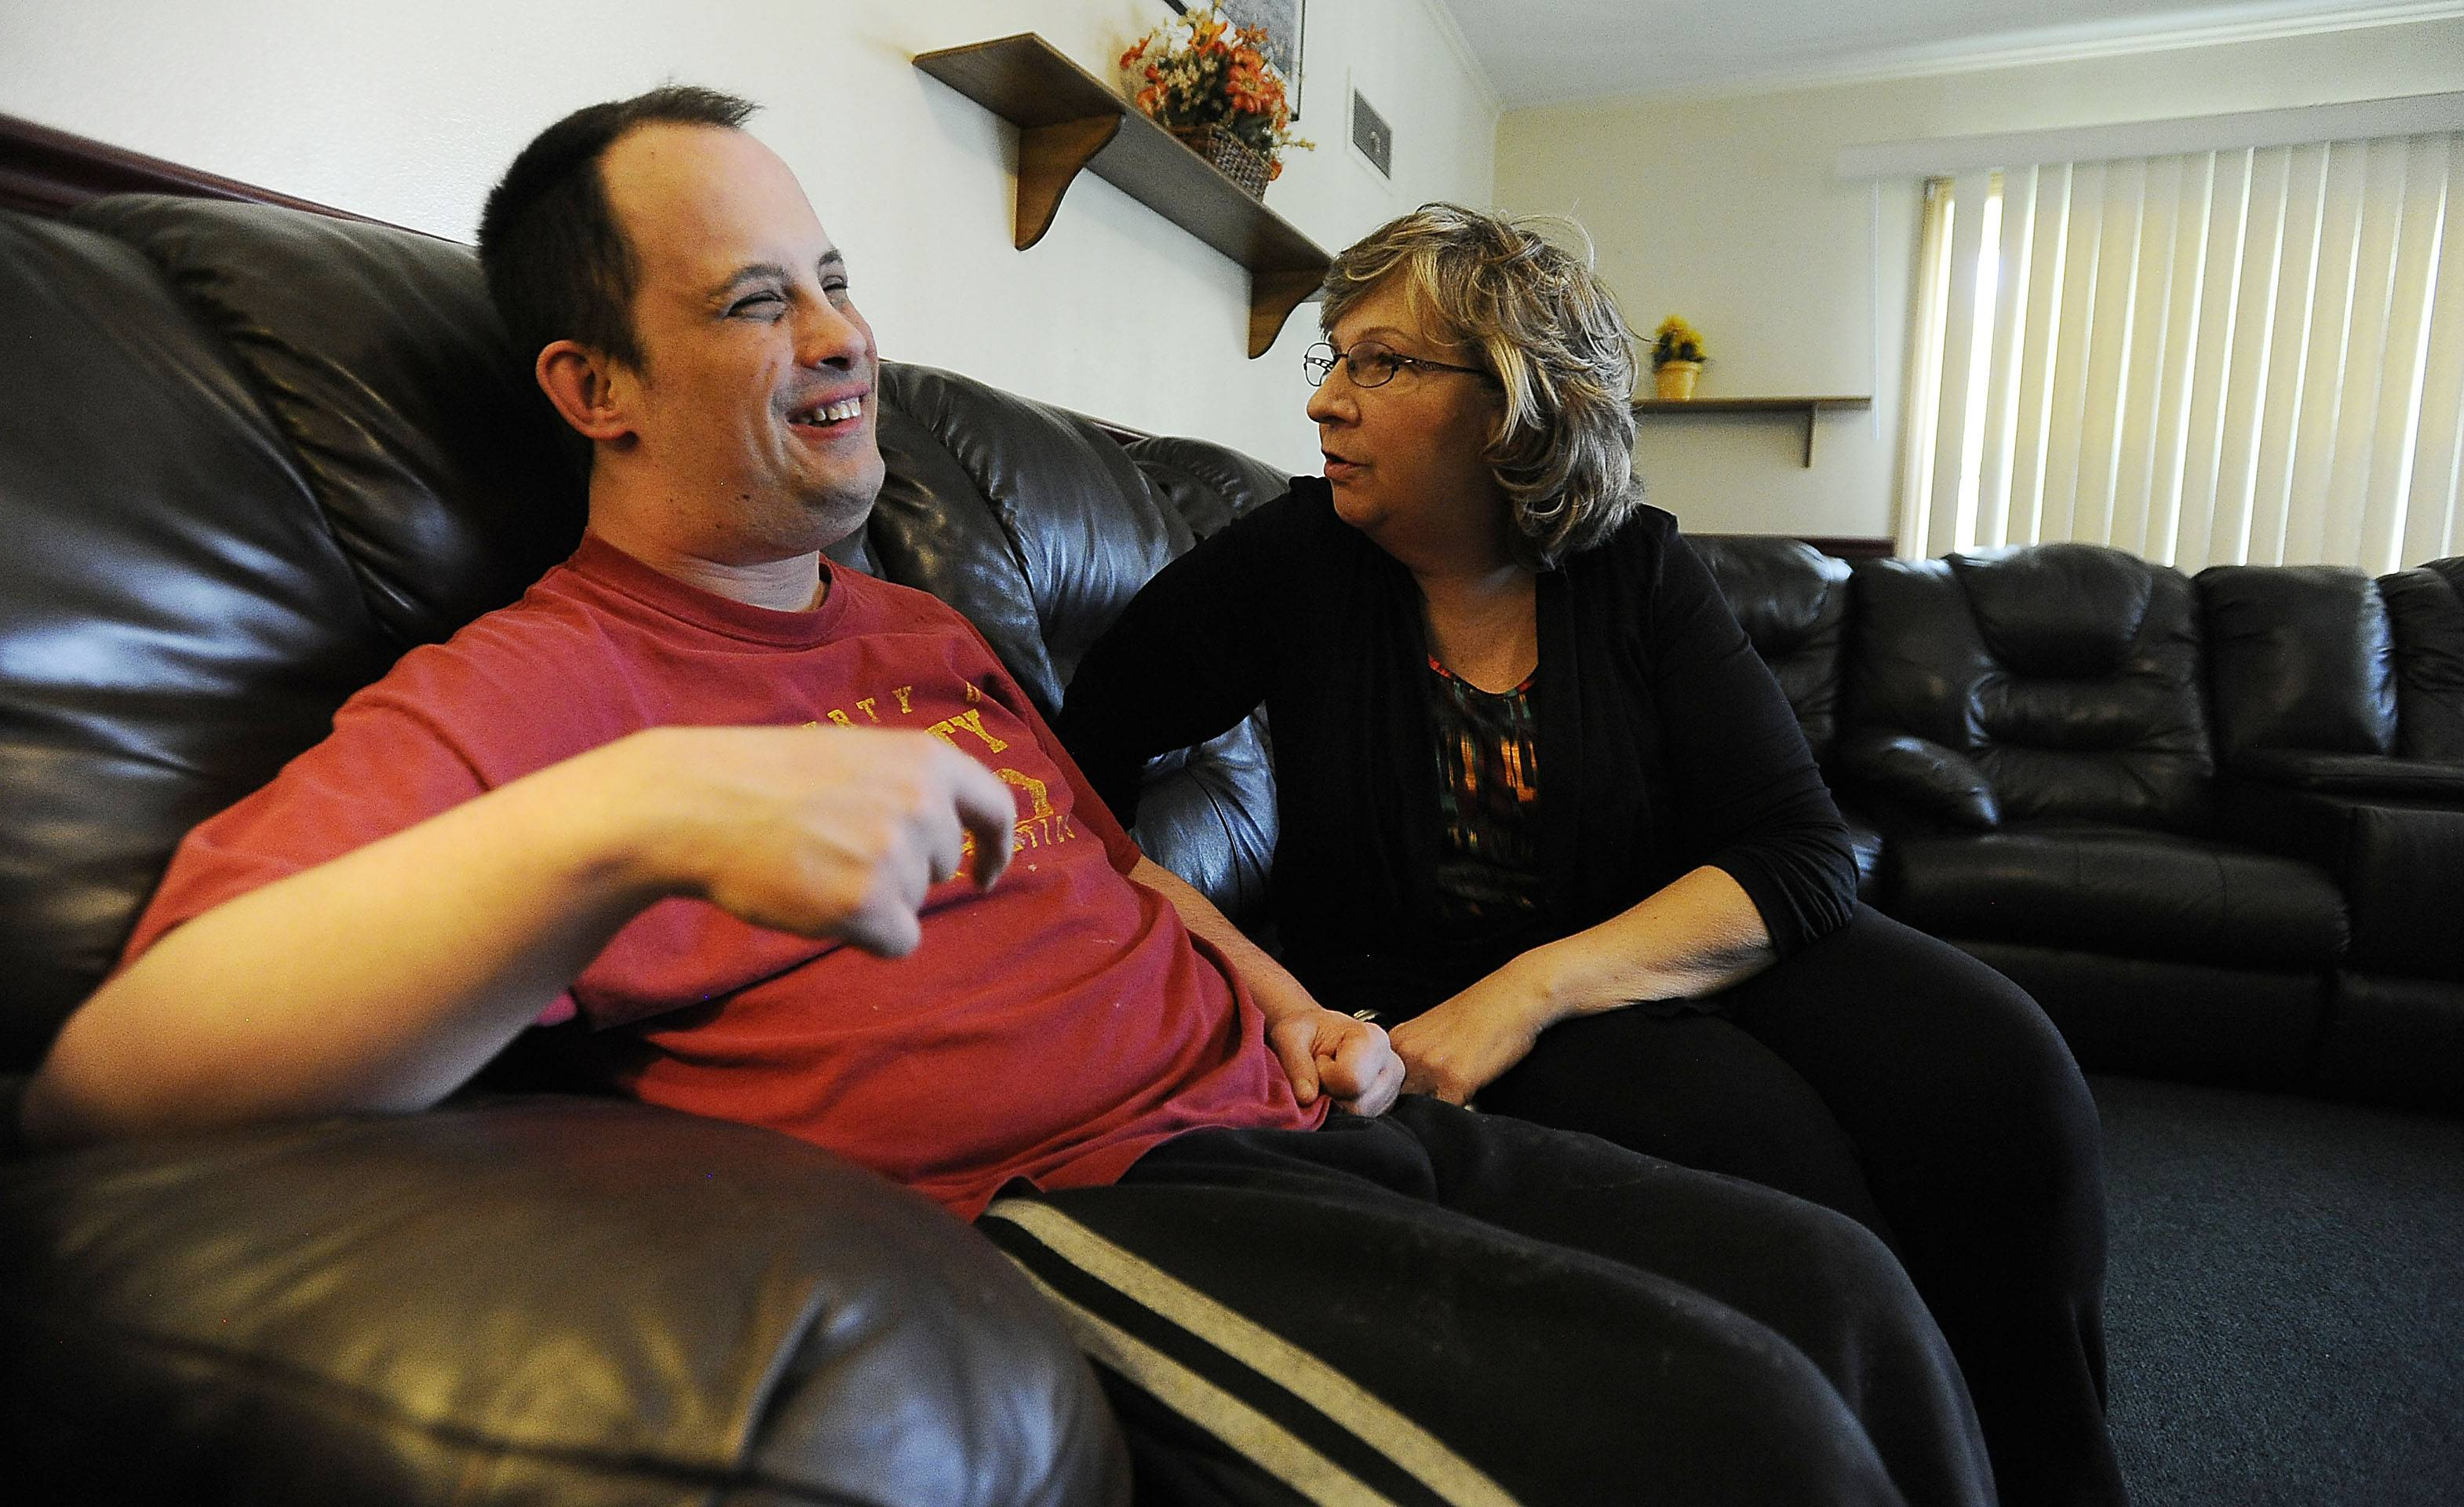 Editorial: Pay raises overdue for caregivers